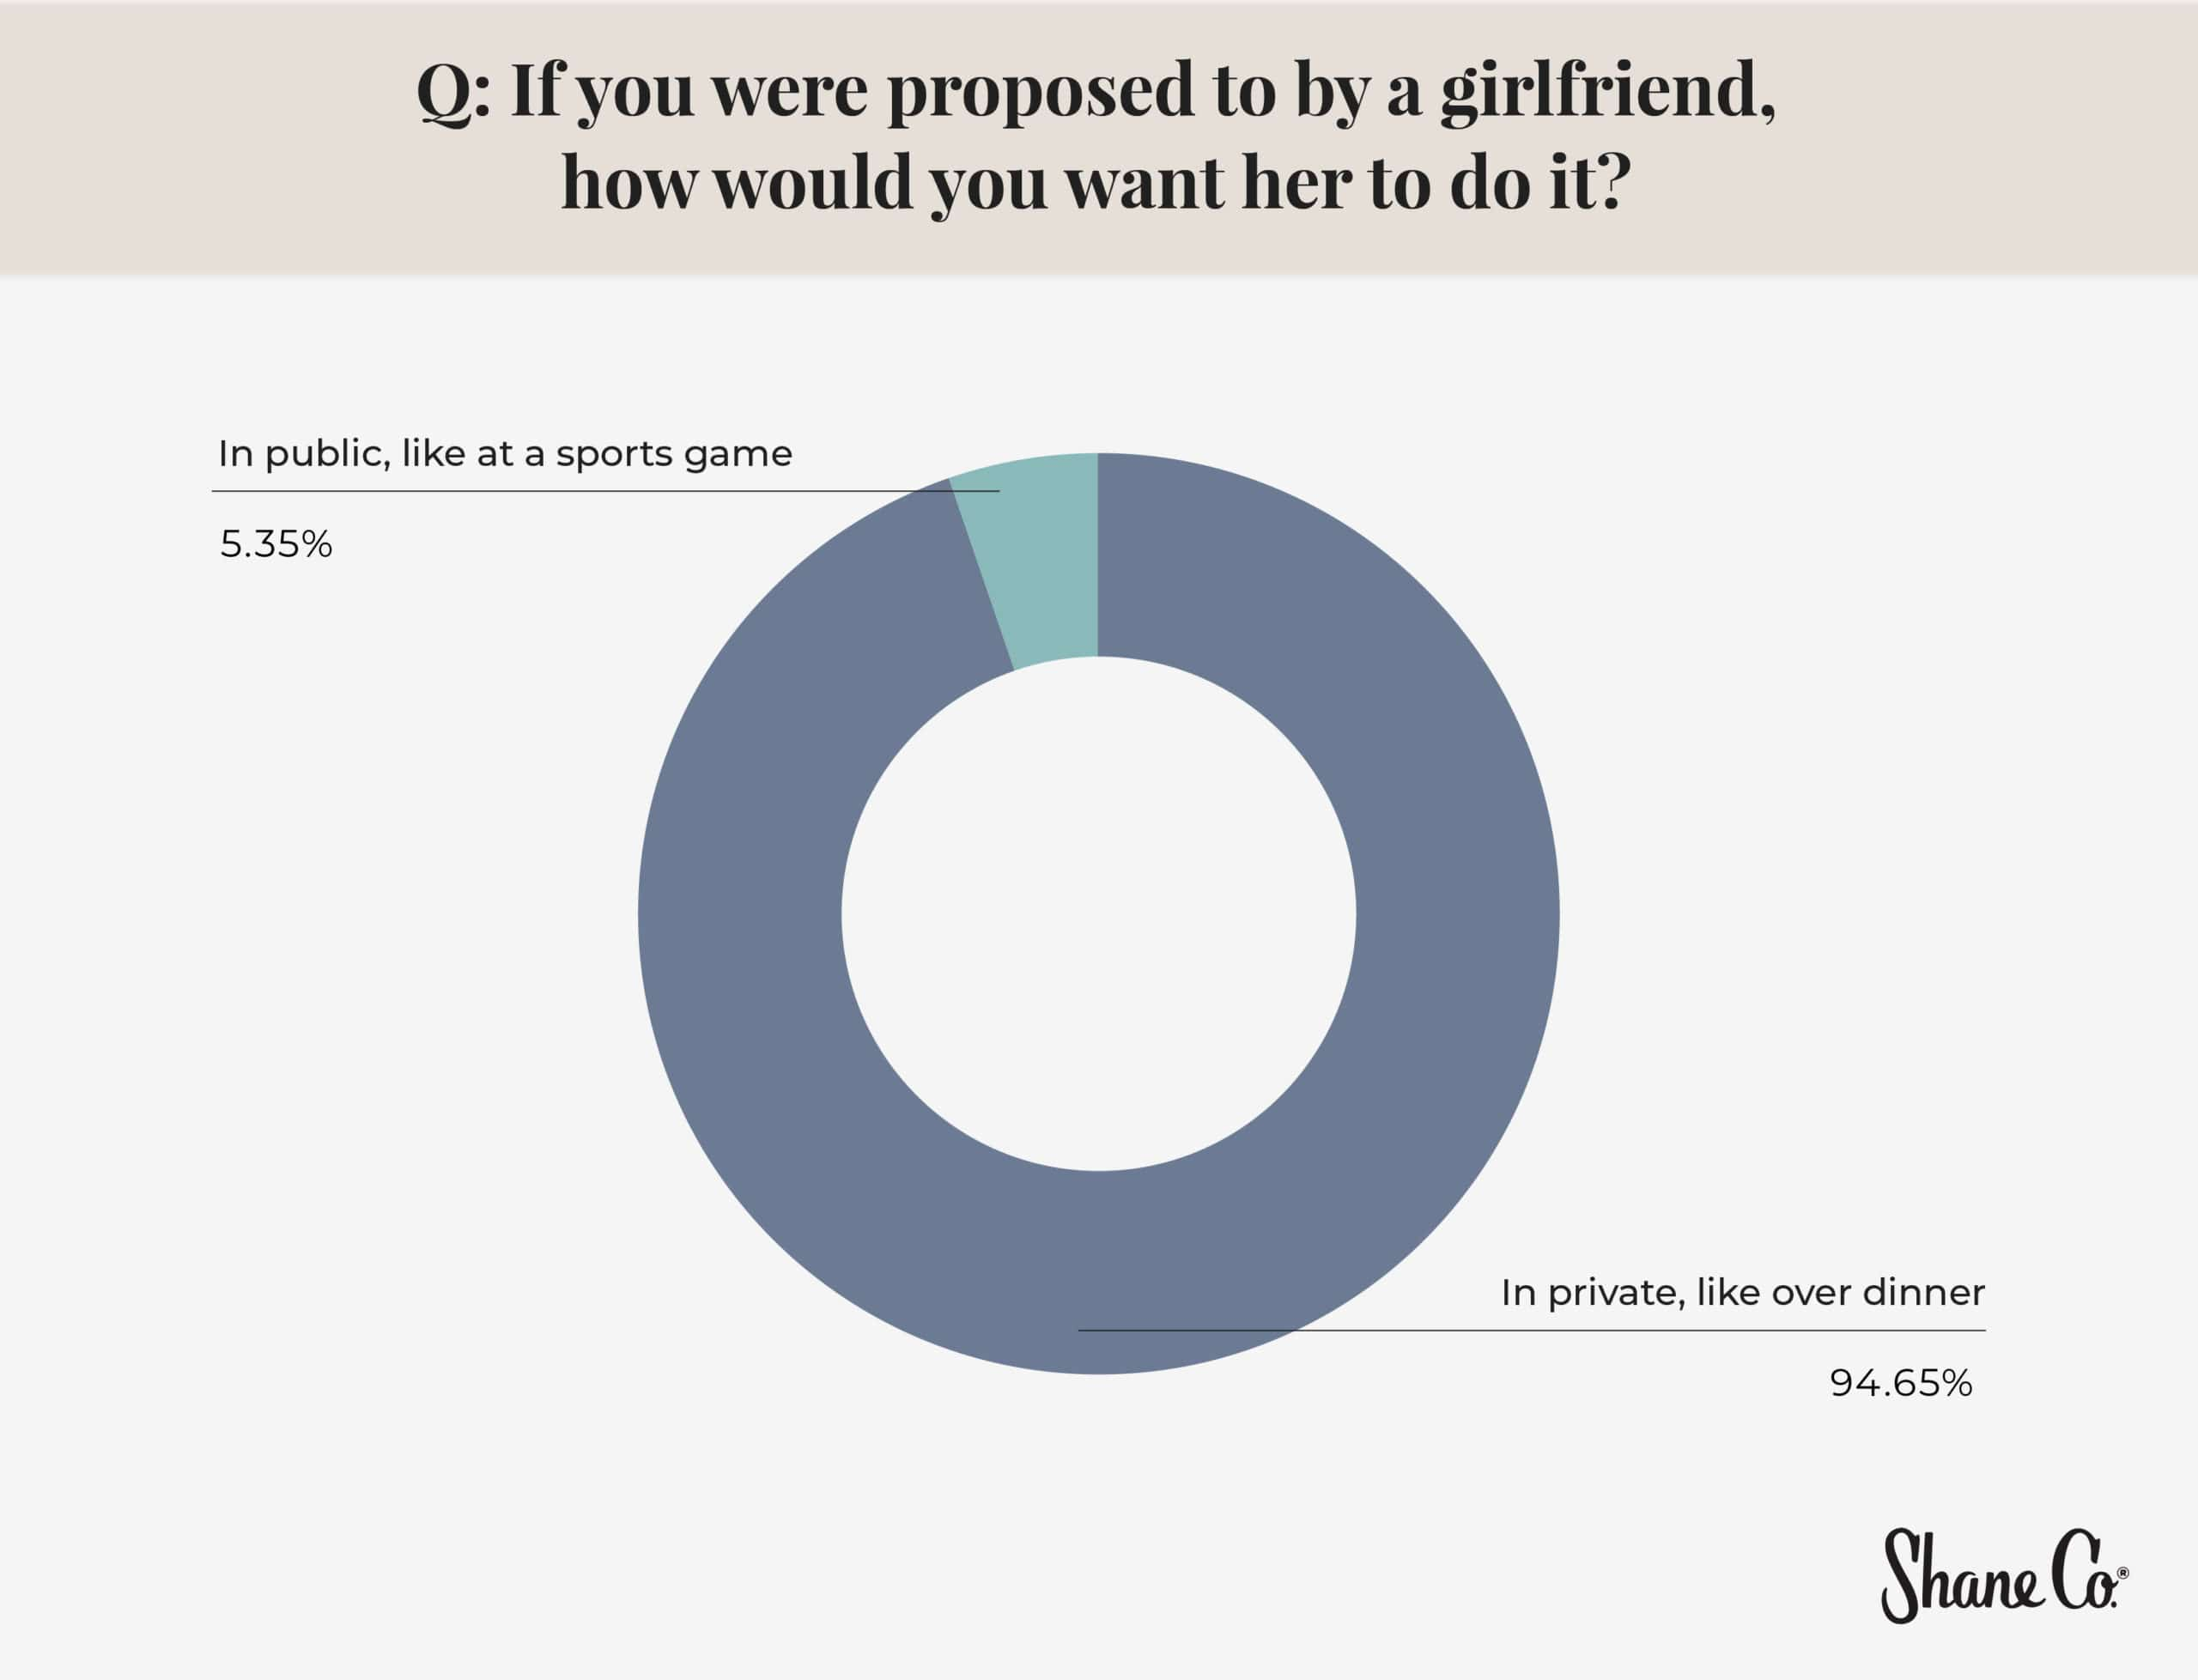 Circle graph outlining the percentage of men who would want to be proposed to in public vs. private